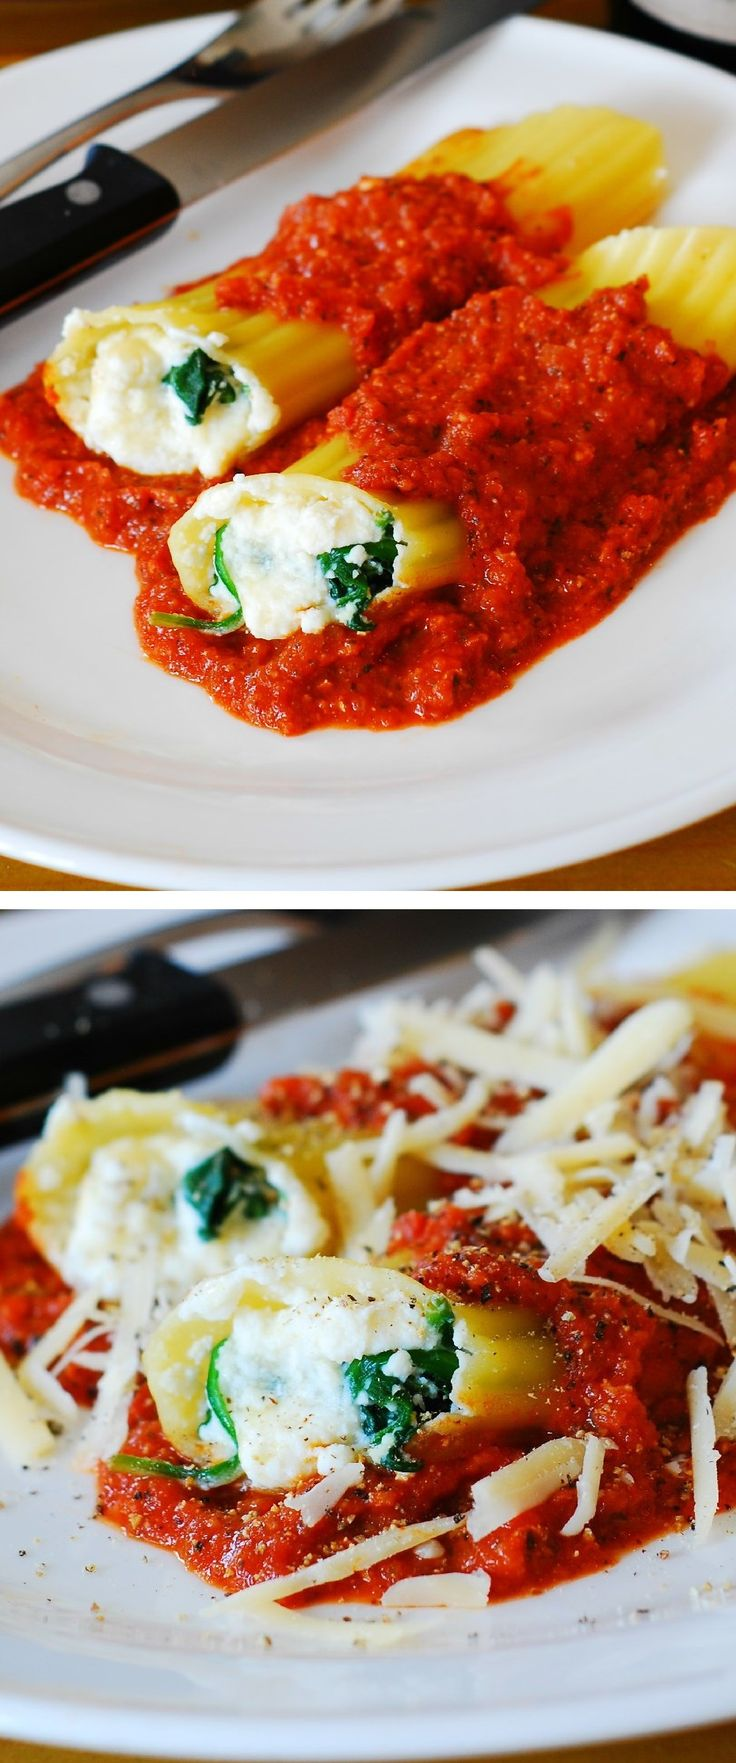 Stuffed manicotti pasta shells with ricotta cheese and spinach filling in a homemade tomato sauce | Italian pasta recipes (food), vegetarian & meatless recipes